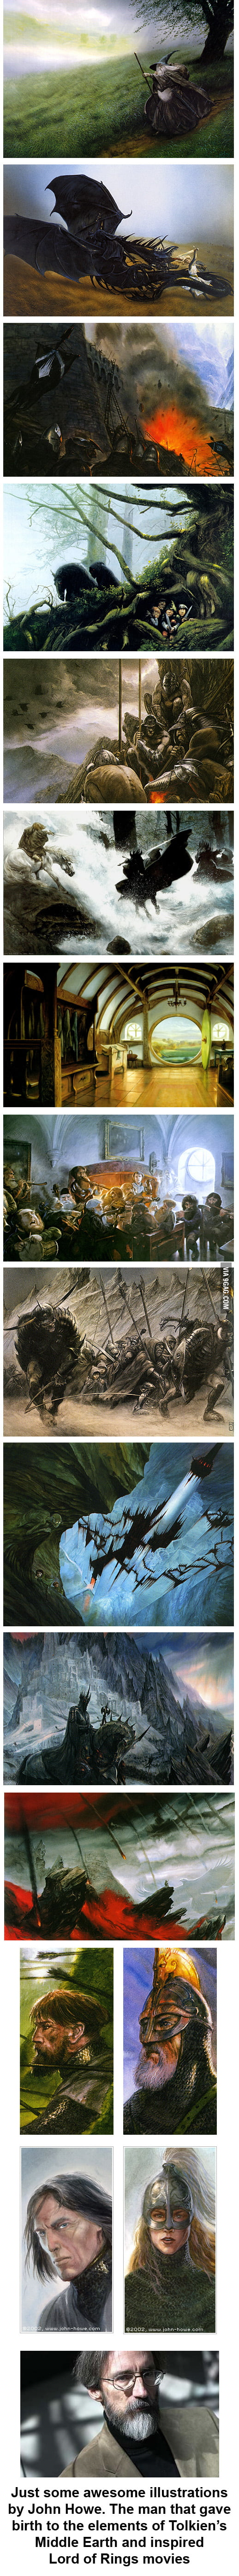 Illustrations which inspired The Lord of the Rings